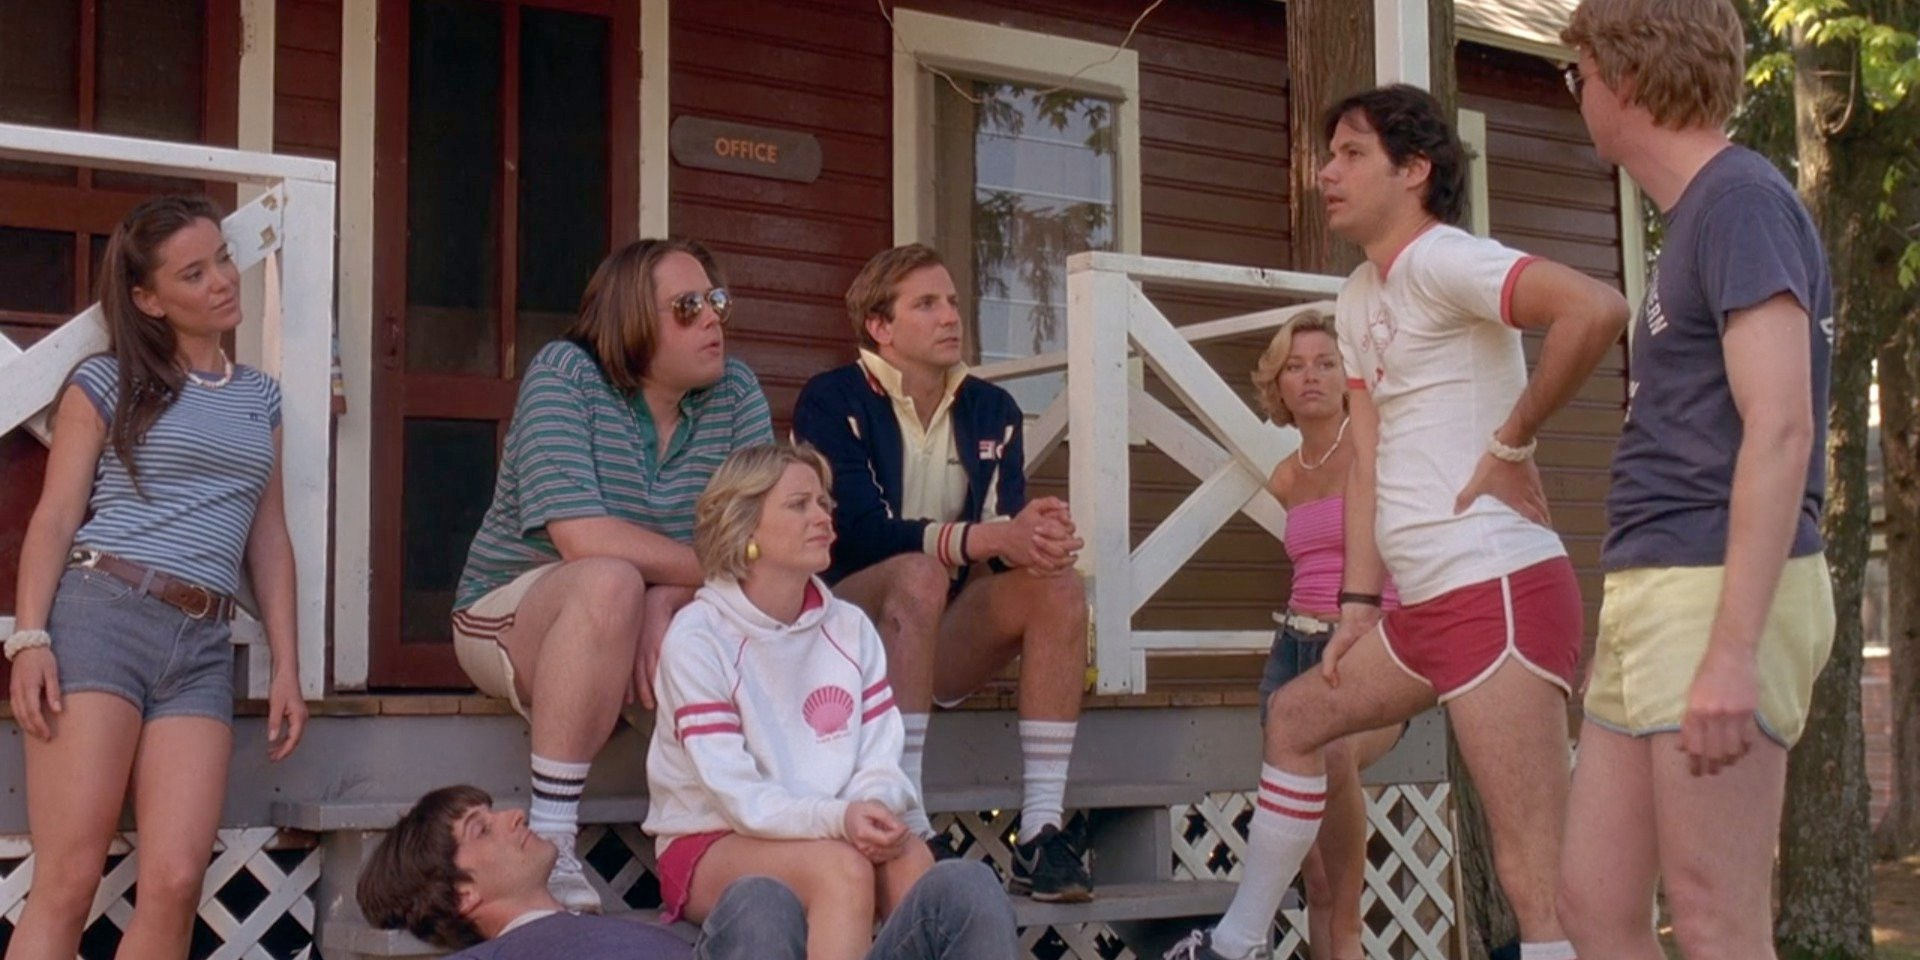 Wet Hot American Summer - Amanda welcomes new guests, Emily and Robb, and return guest, Shane, to discuss the cult comedy, Wet Hot American Summer. Emily loves seeing Christopher Meloni in comedic roles, Robb relates to the relationship counseling in the arts and crafts time, Shane has incorporated quotes from the movie into his life, and Amanda laughs at child death.